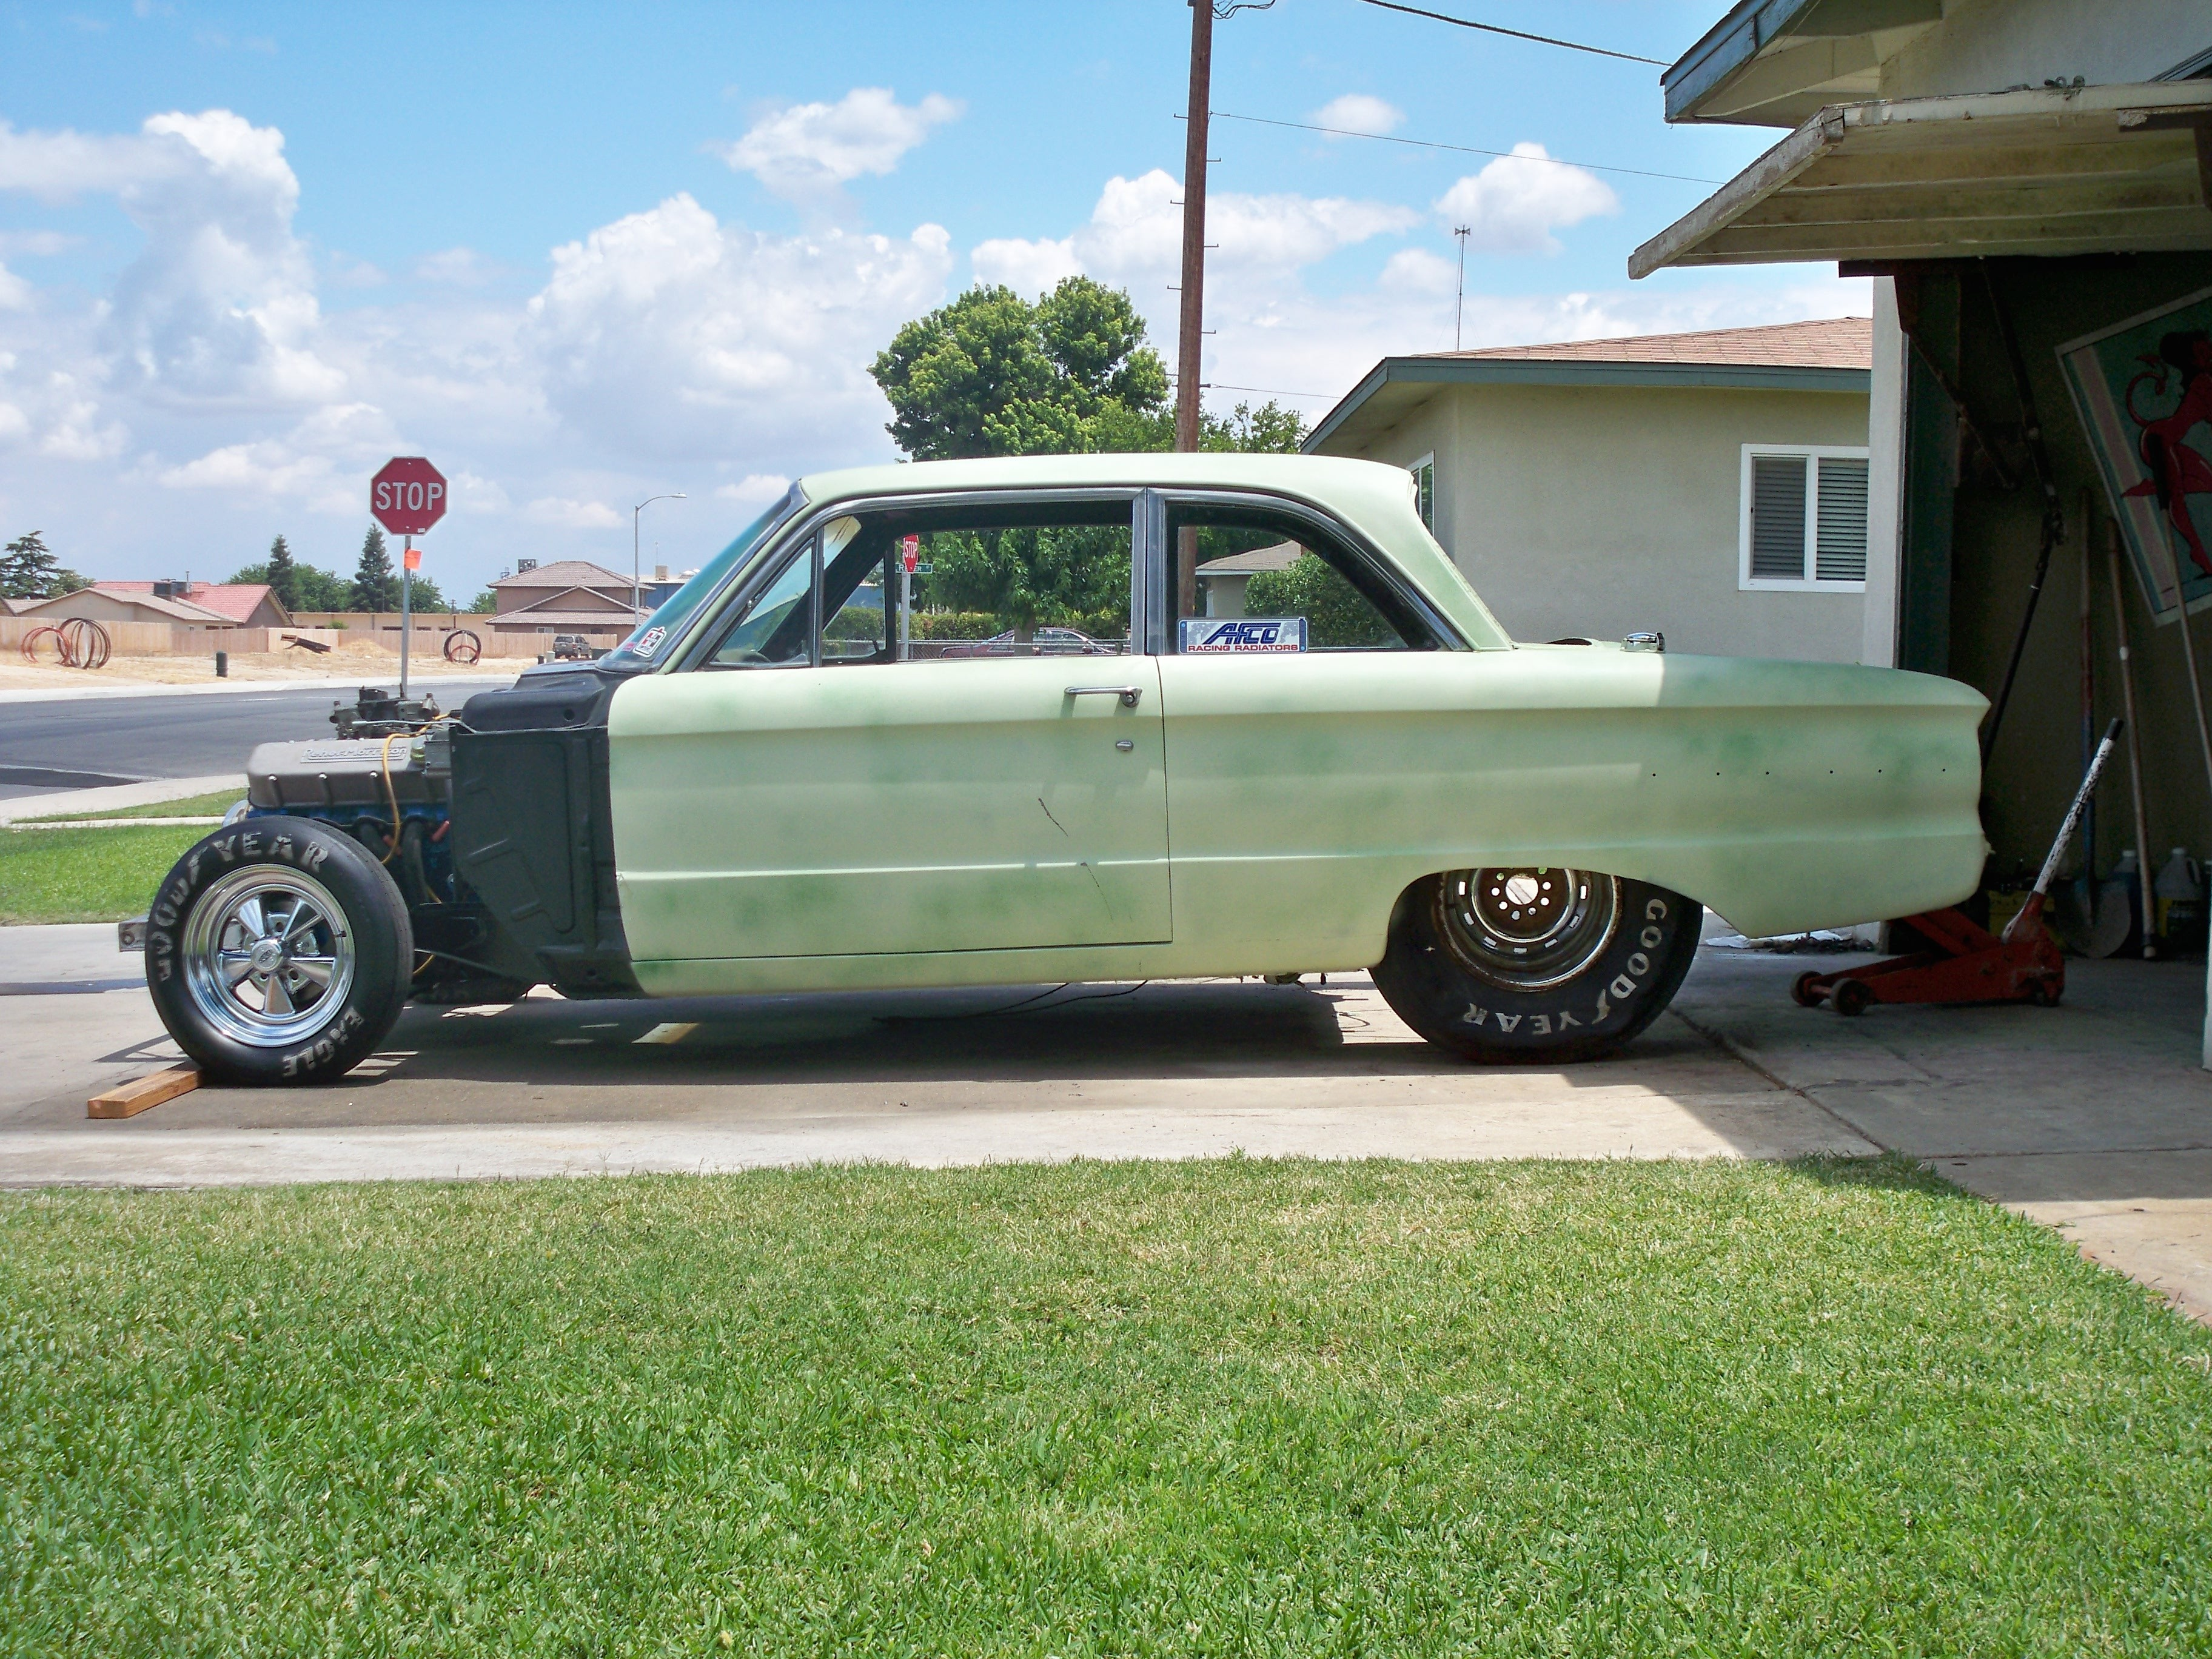 chopped39 1960 Ford Falcon 13186973